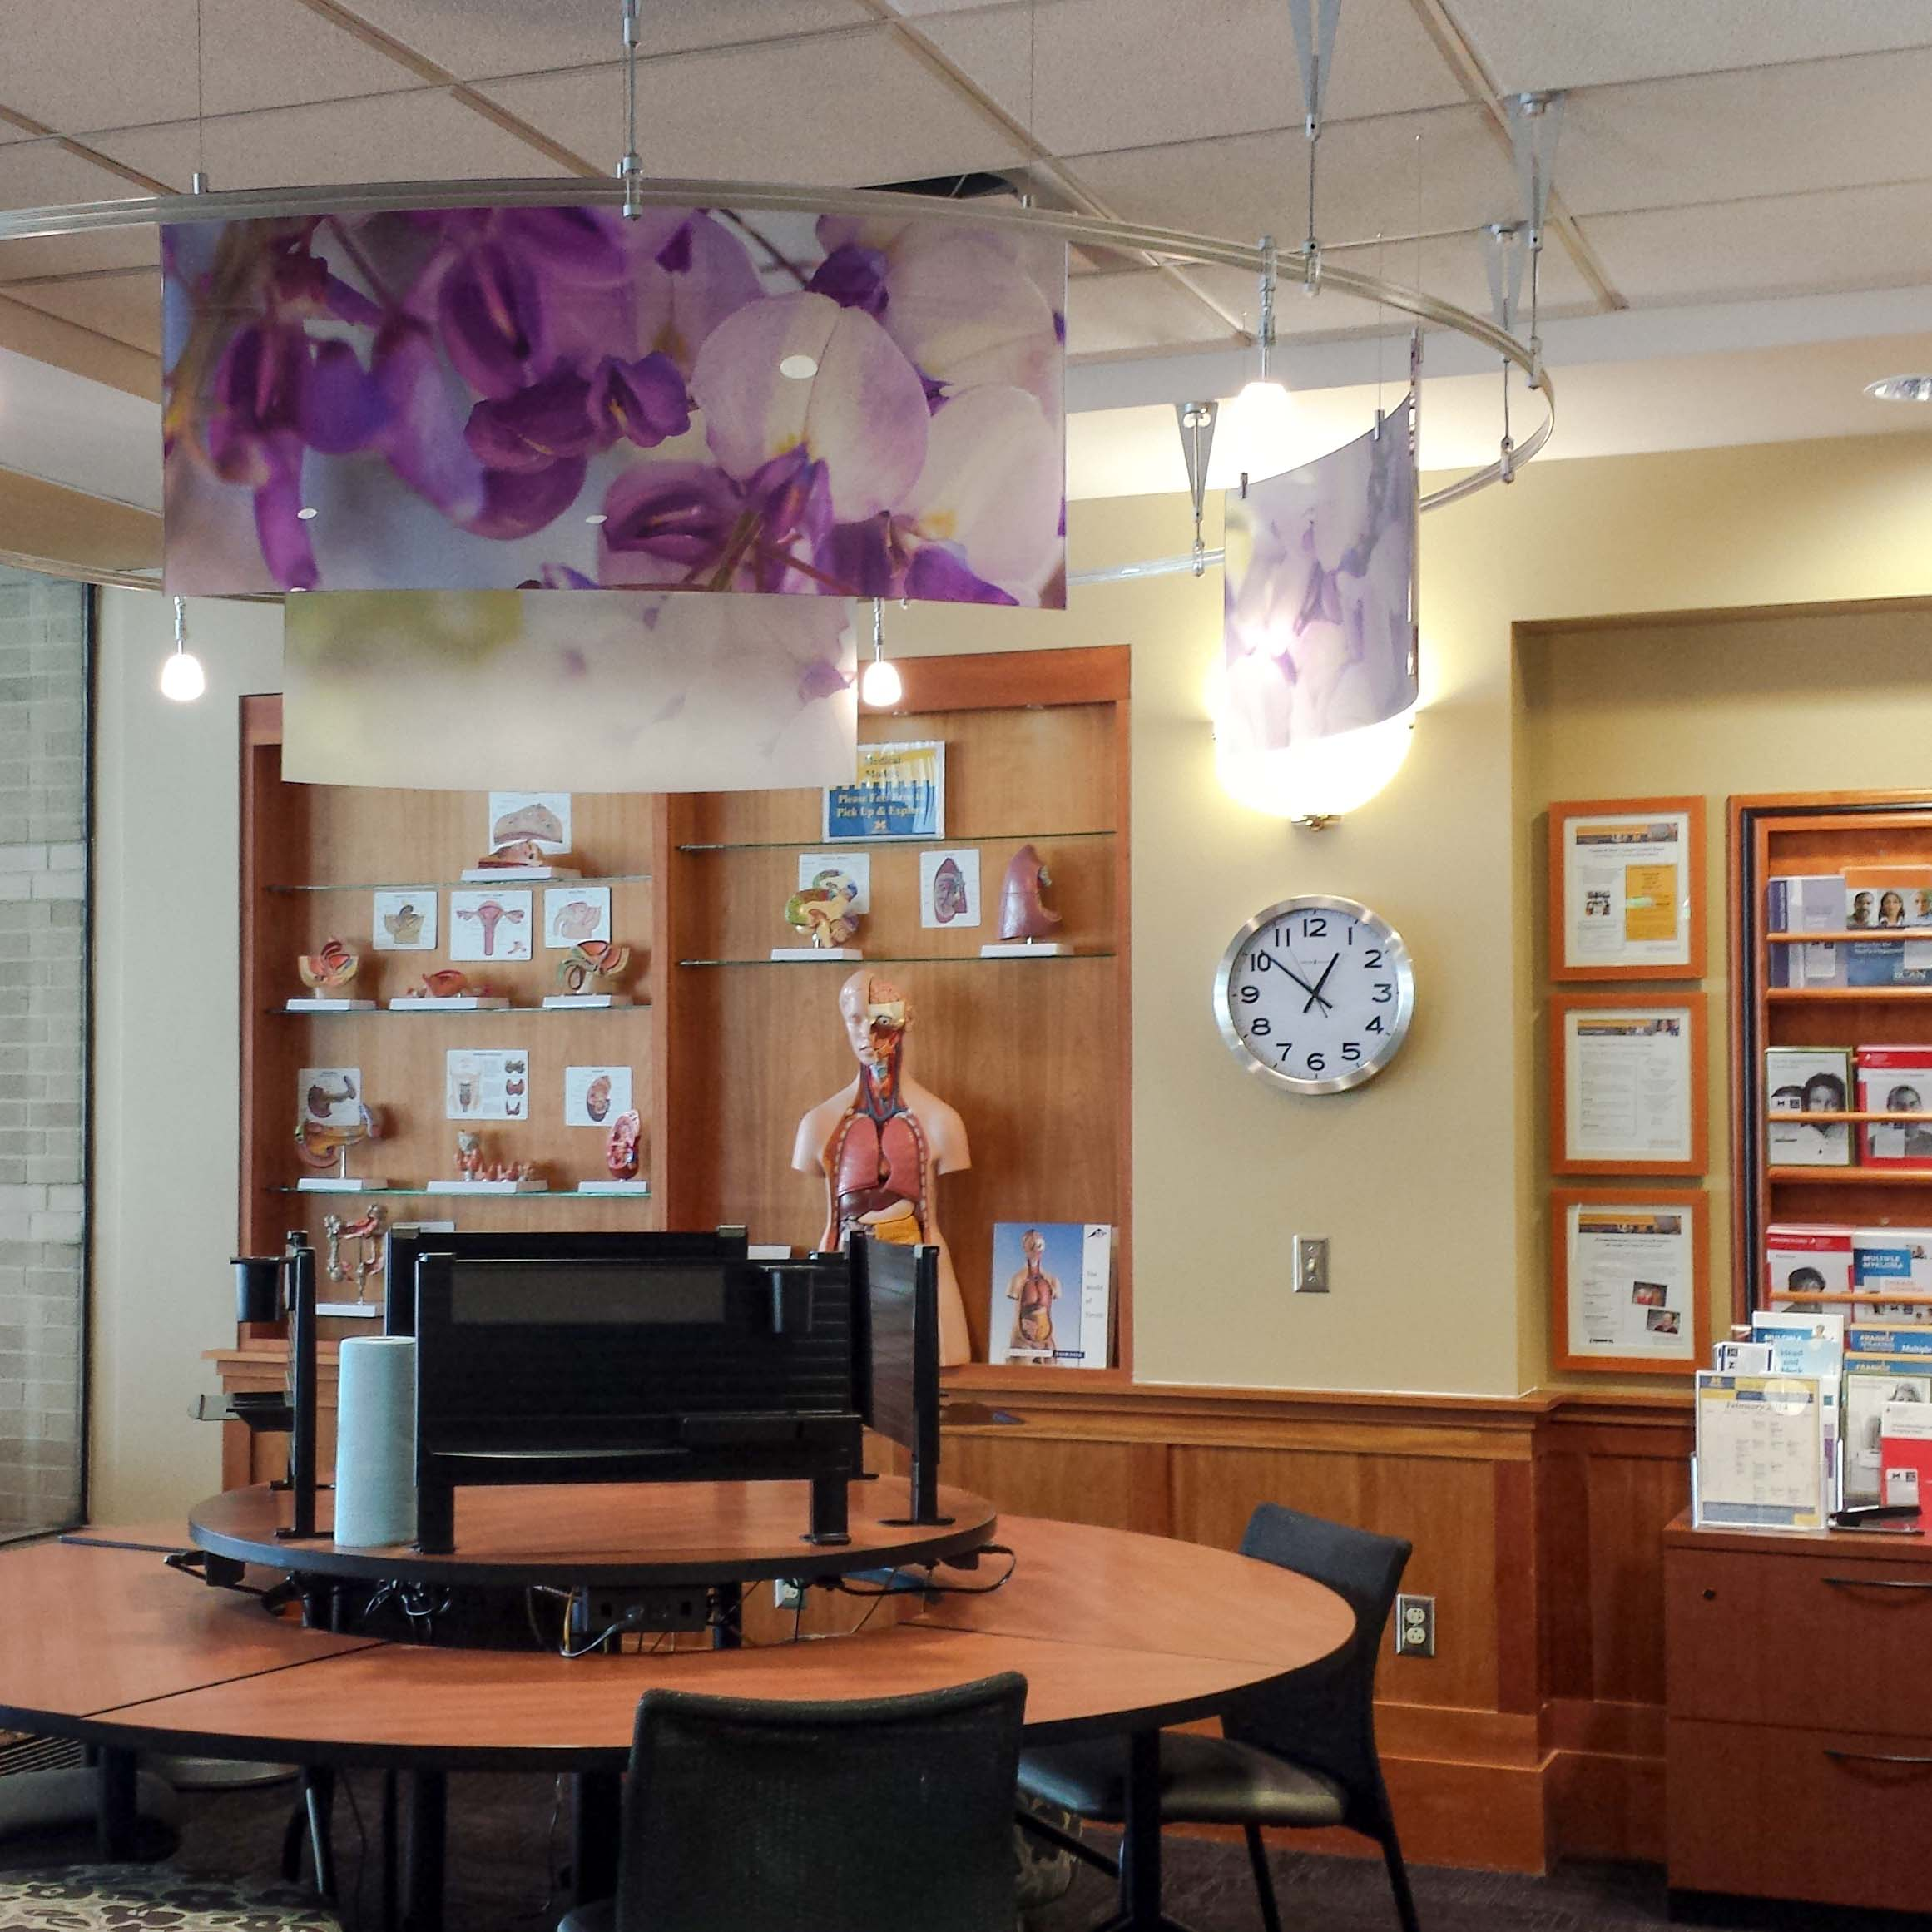 Cancer Center Patient Area